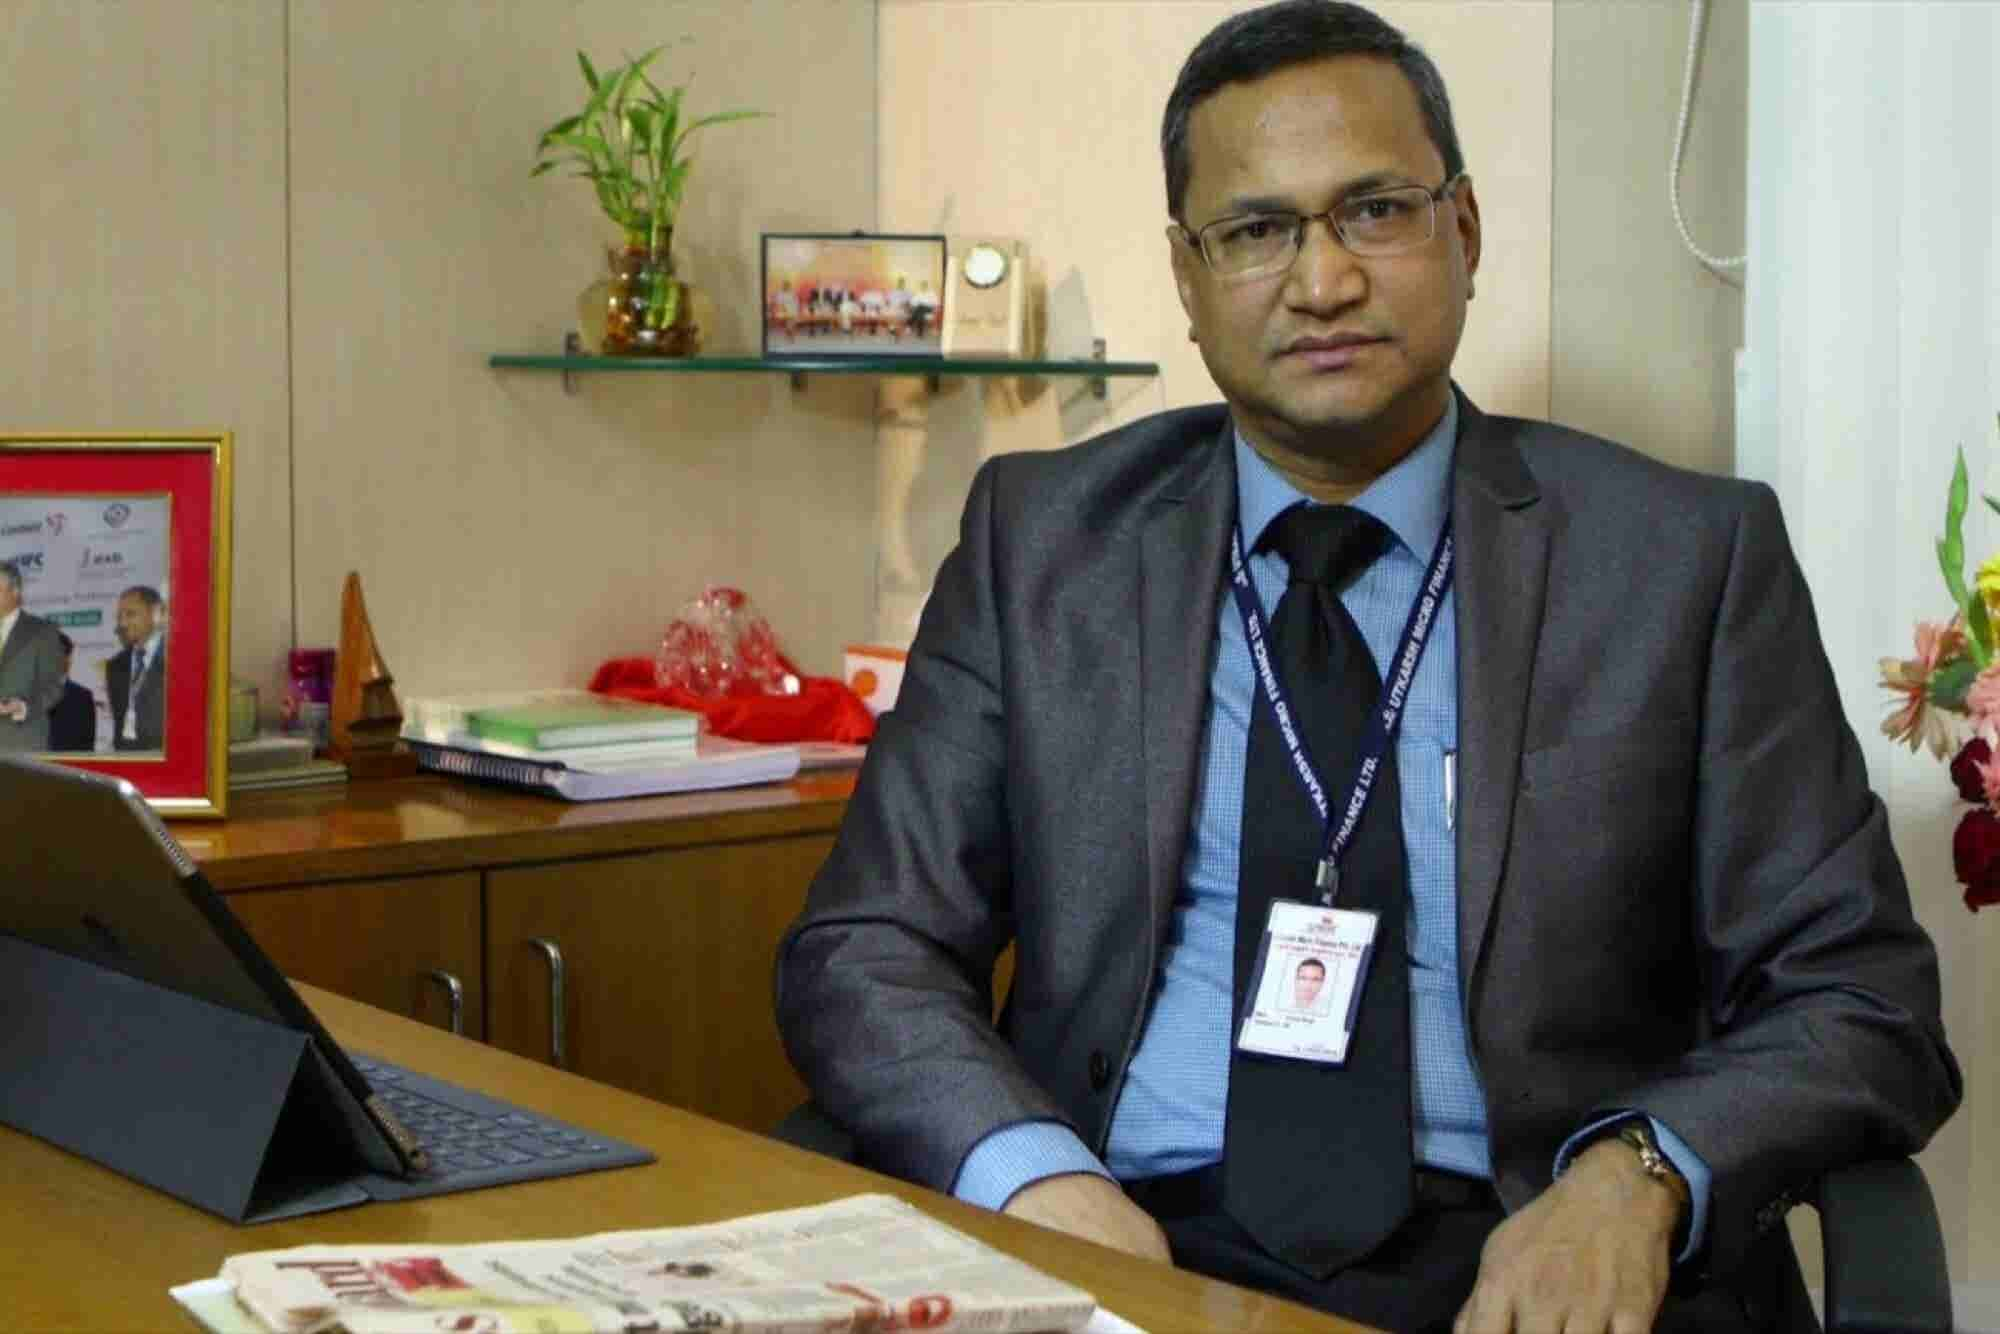 How This Small Finance Bank is Taking Big Entrepreneurial Steps